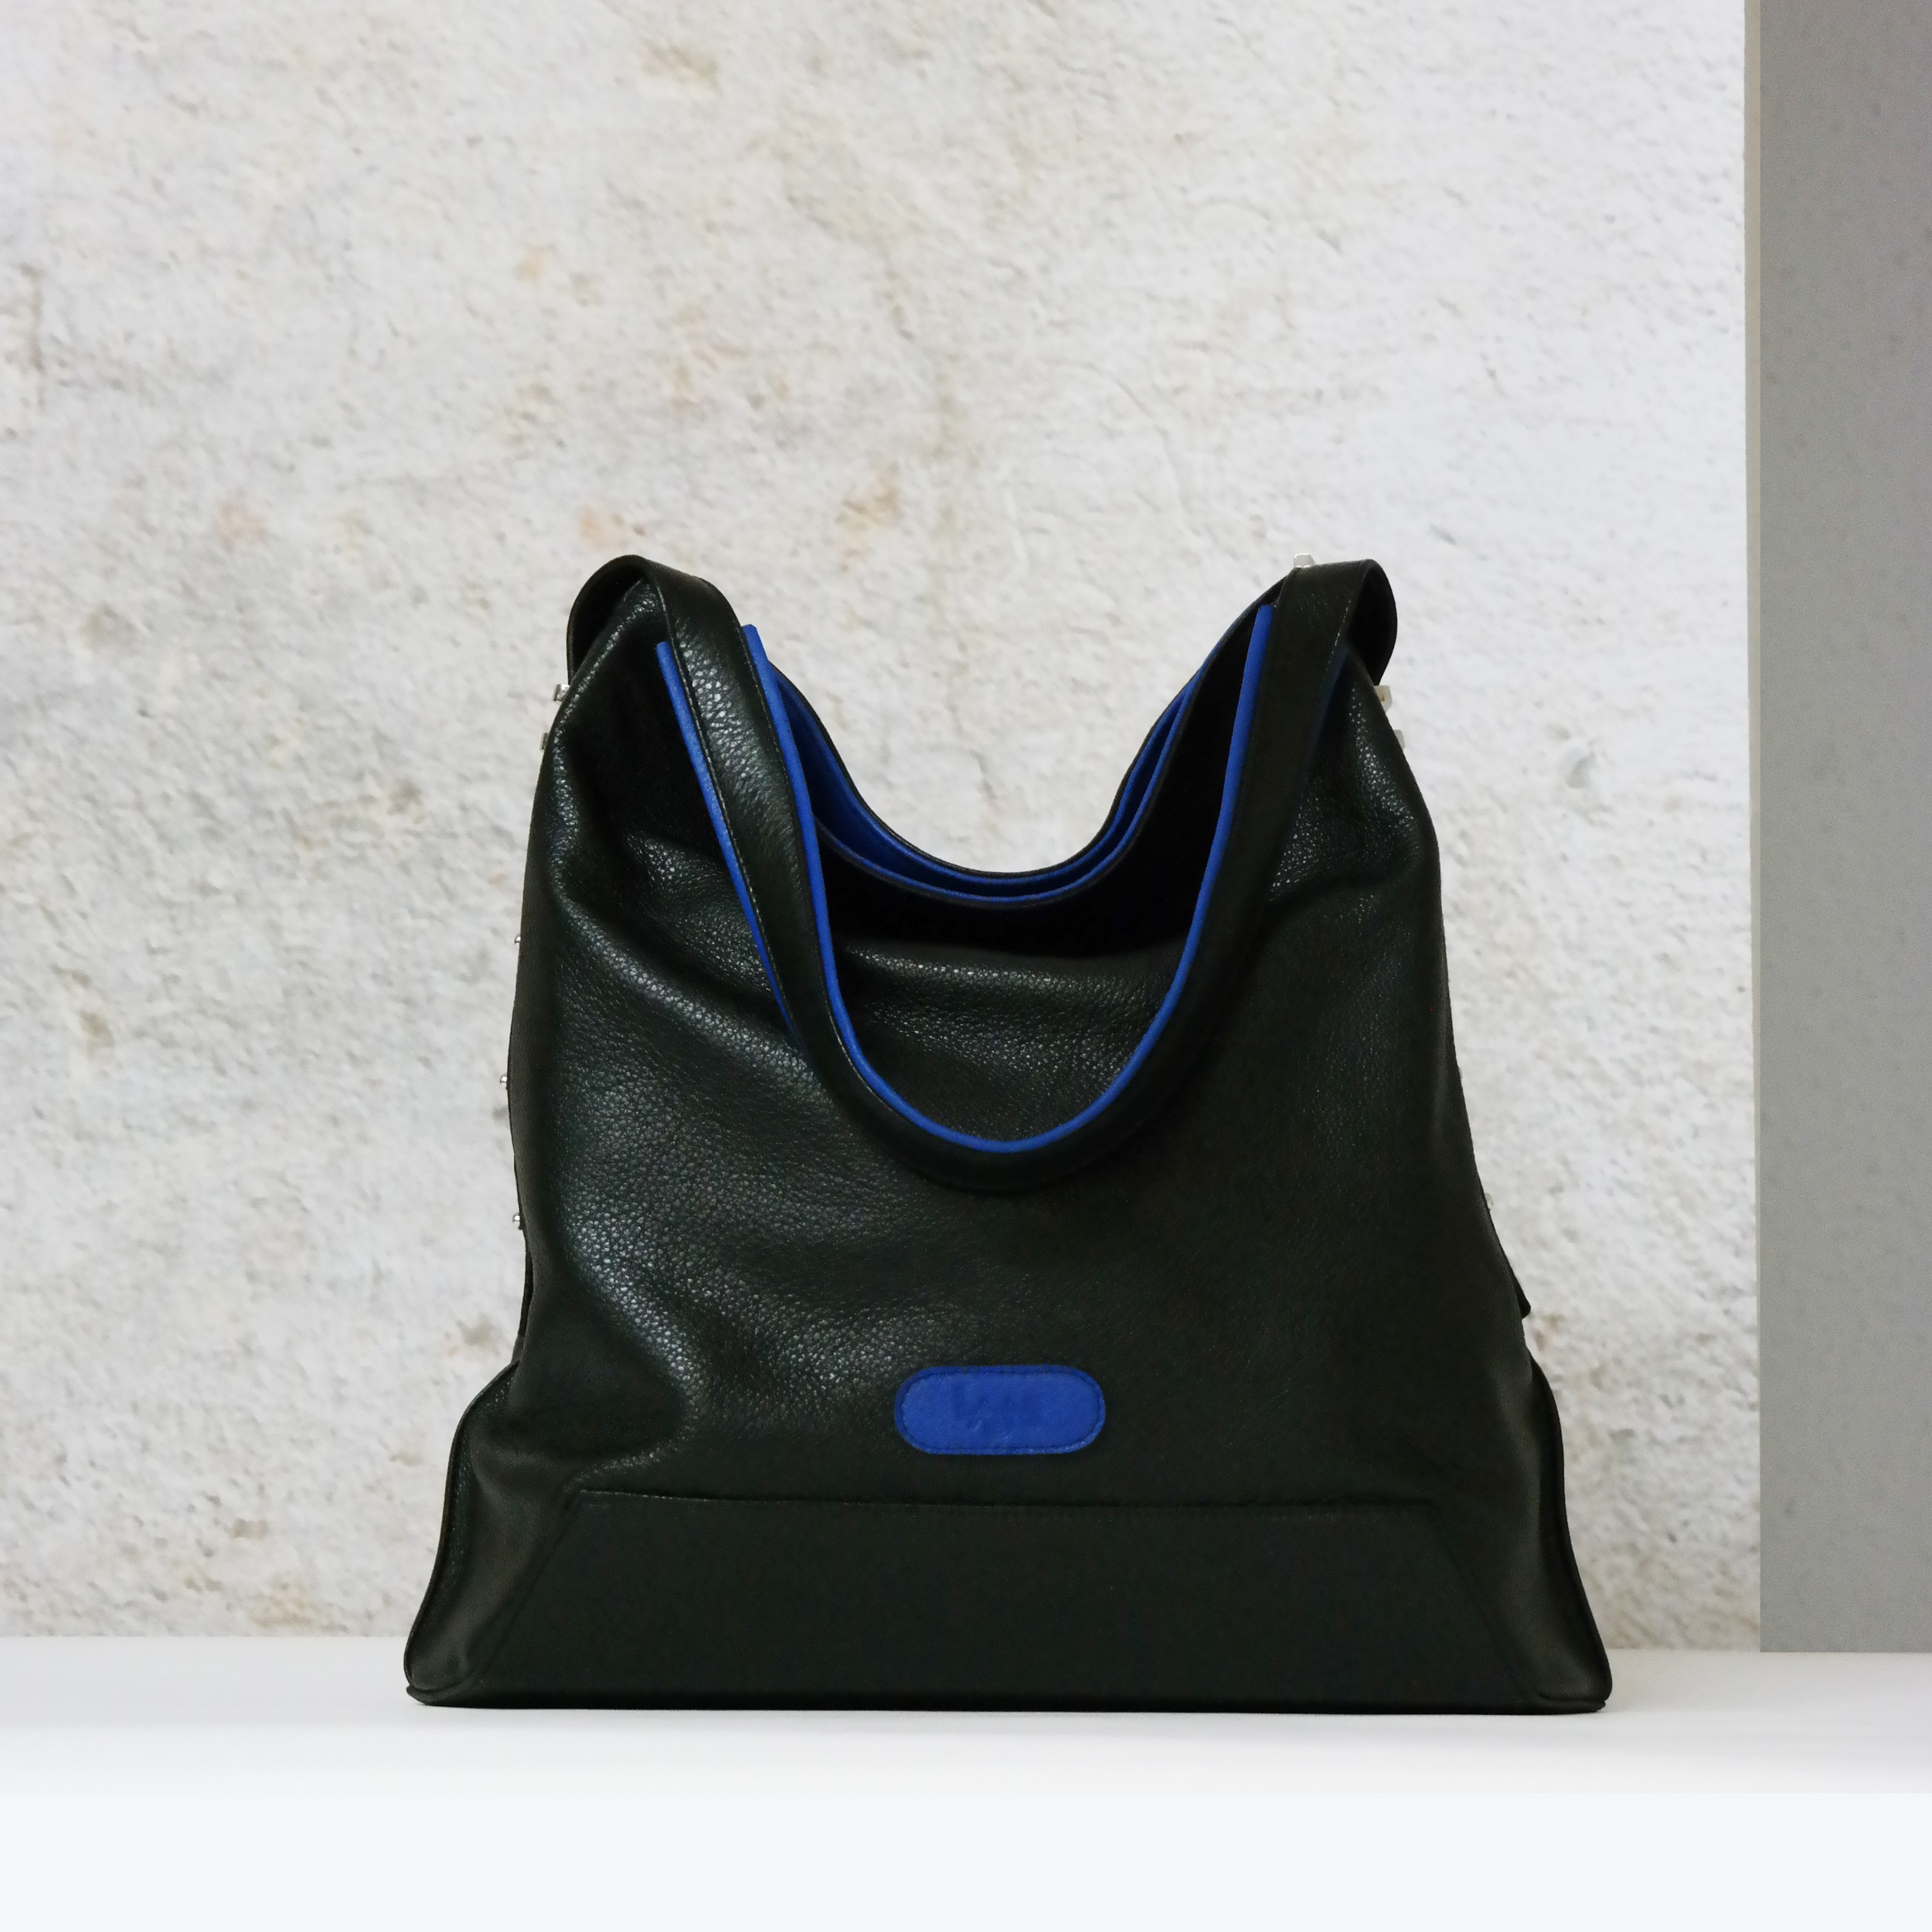 2012_fek-kek_eleje-shoulder bag_sm